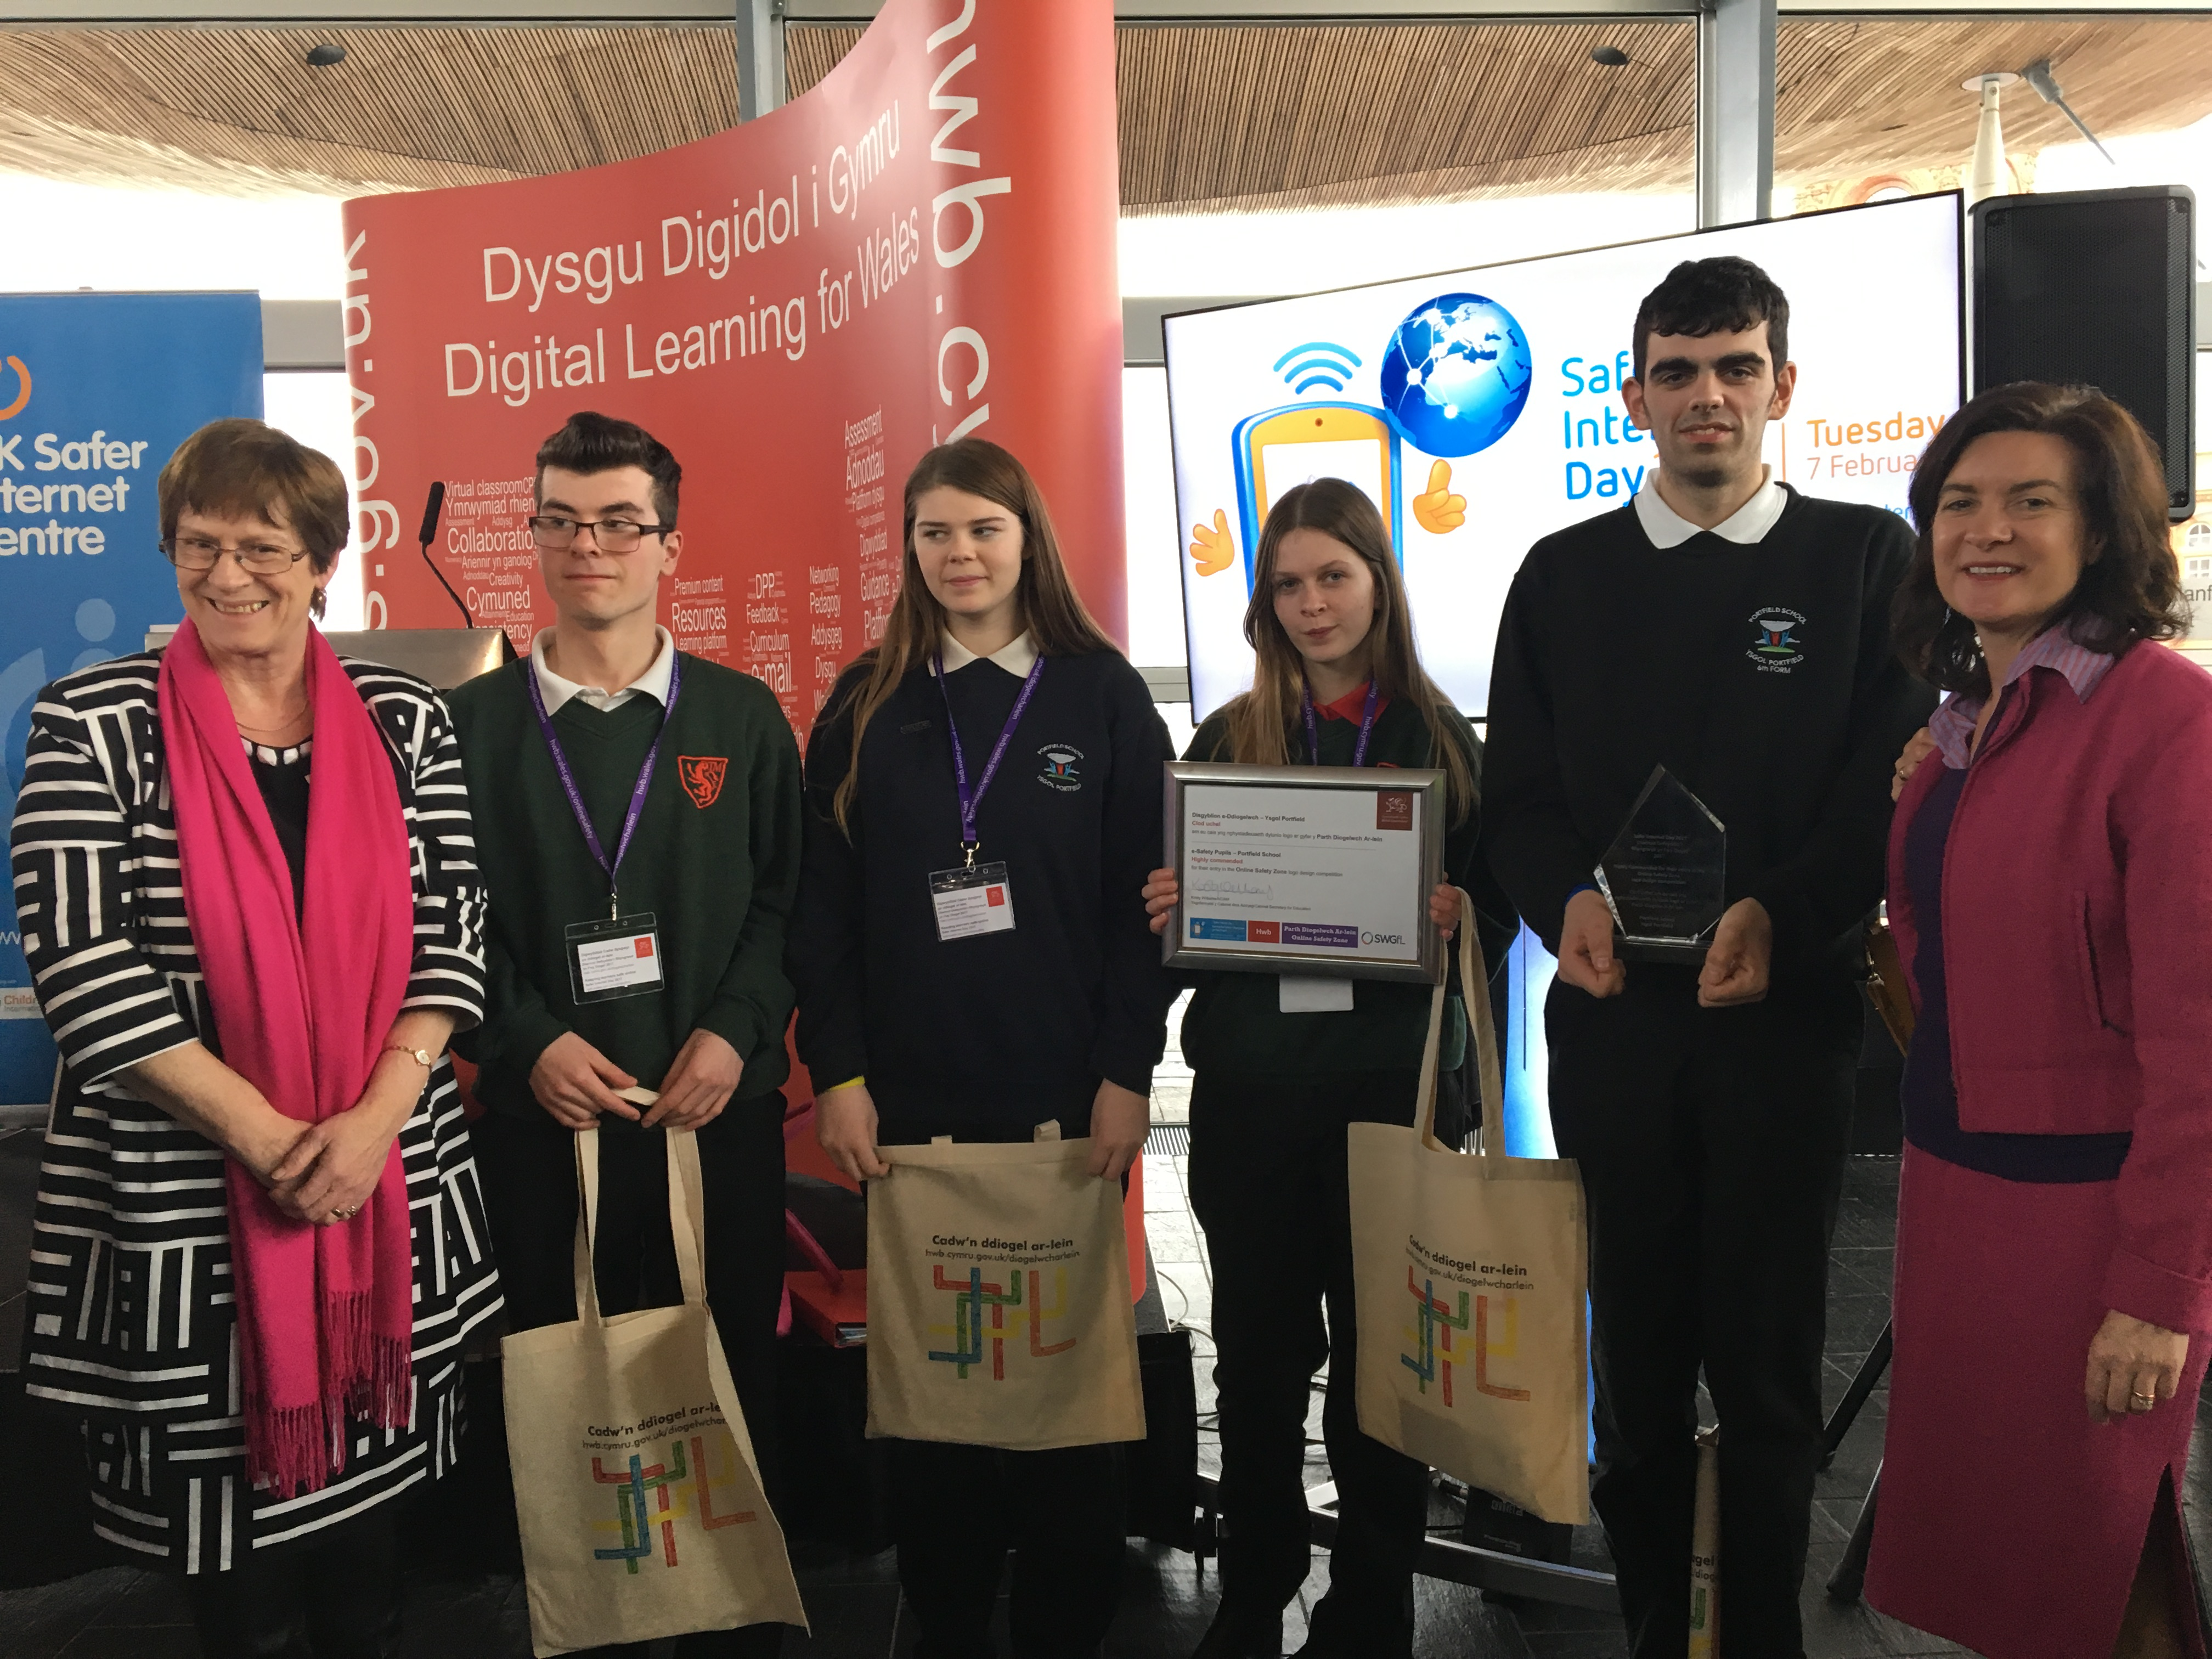 Eluned and Joyce have congratulated local schools on their support for Safer Internet Day.